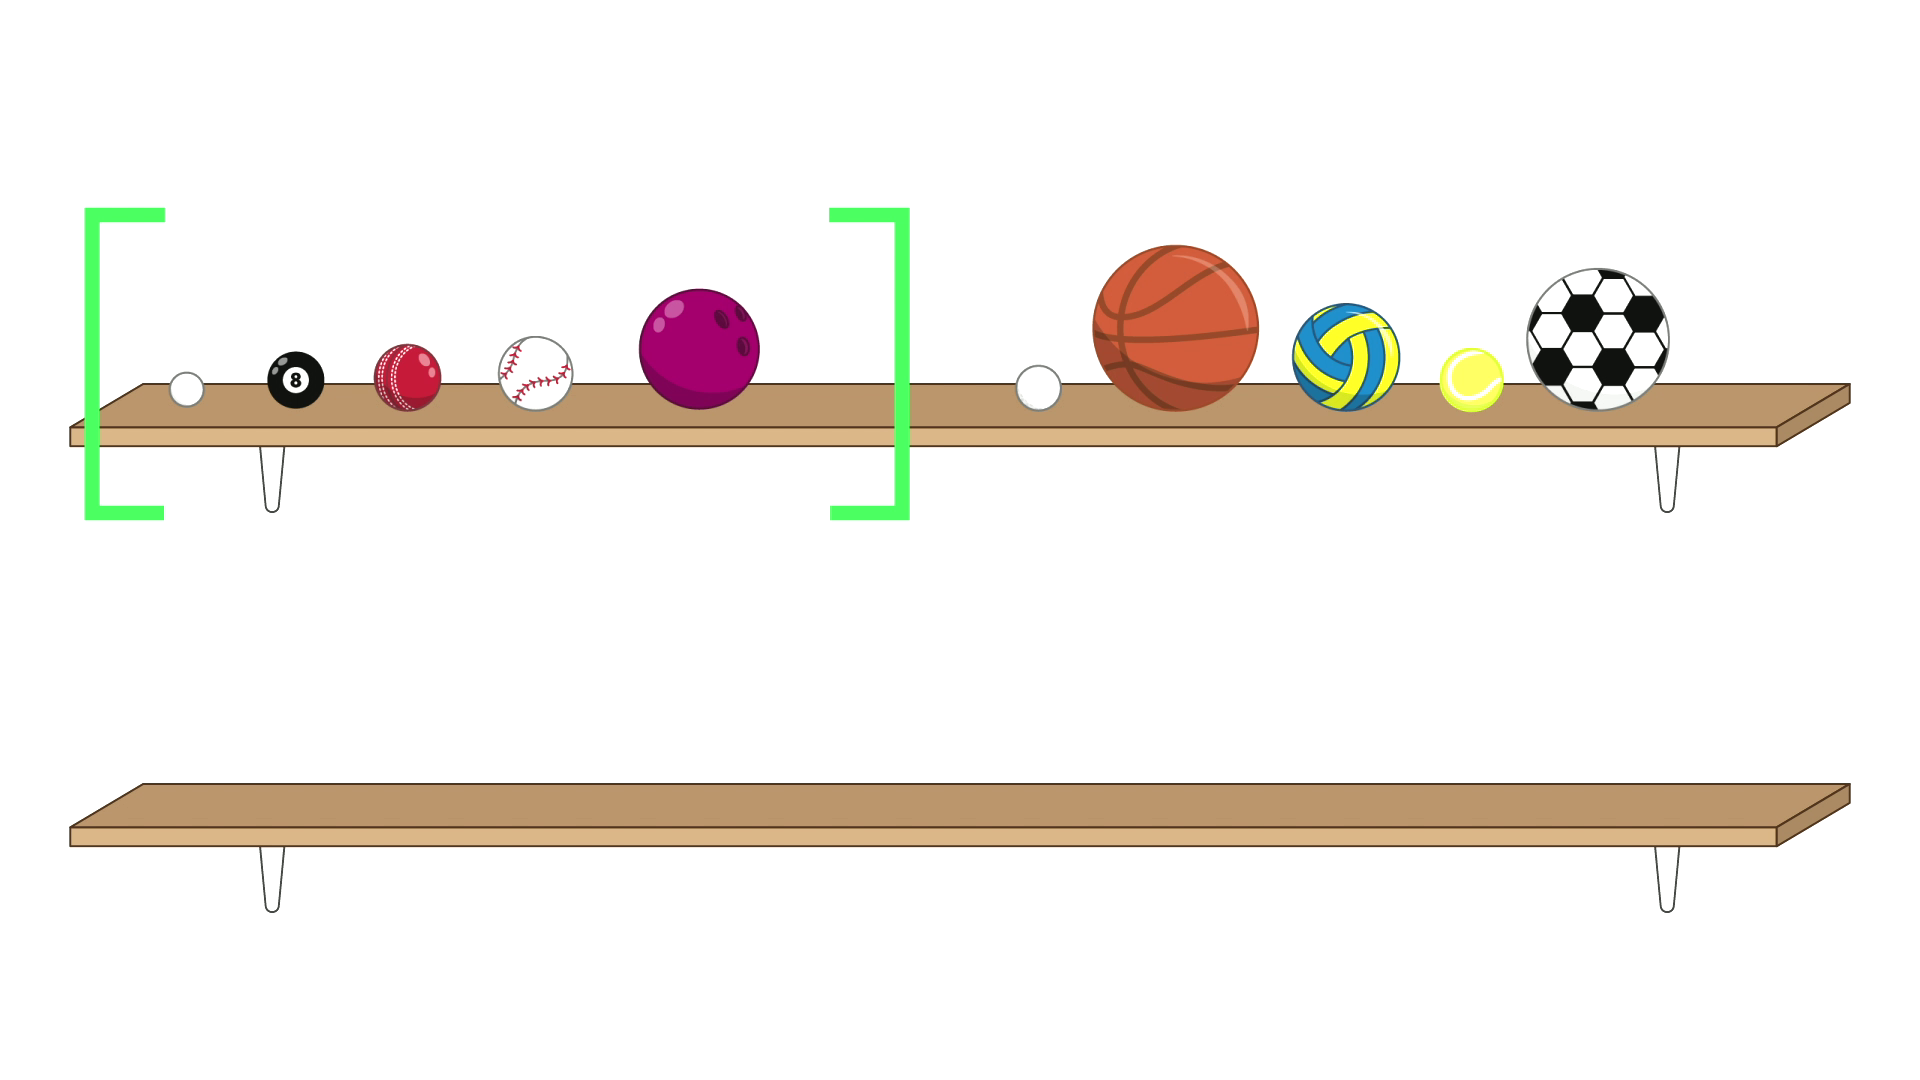 All 10 balls are on the top shelf. A pair of green brackets contain the left half of the shelf, and contains a ping-pong ball, a pool ball, a cricket ball, a baseball and a bowling ball, so these are in size order. After the brackets are five balls: a golf ball, a basketball, a netball, a tennis ball and a soccer ball. The bottom shelf is empty.